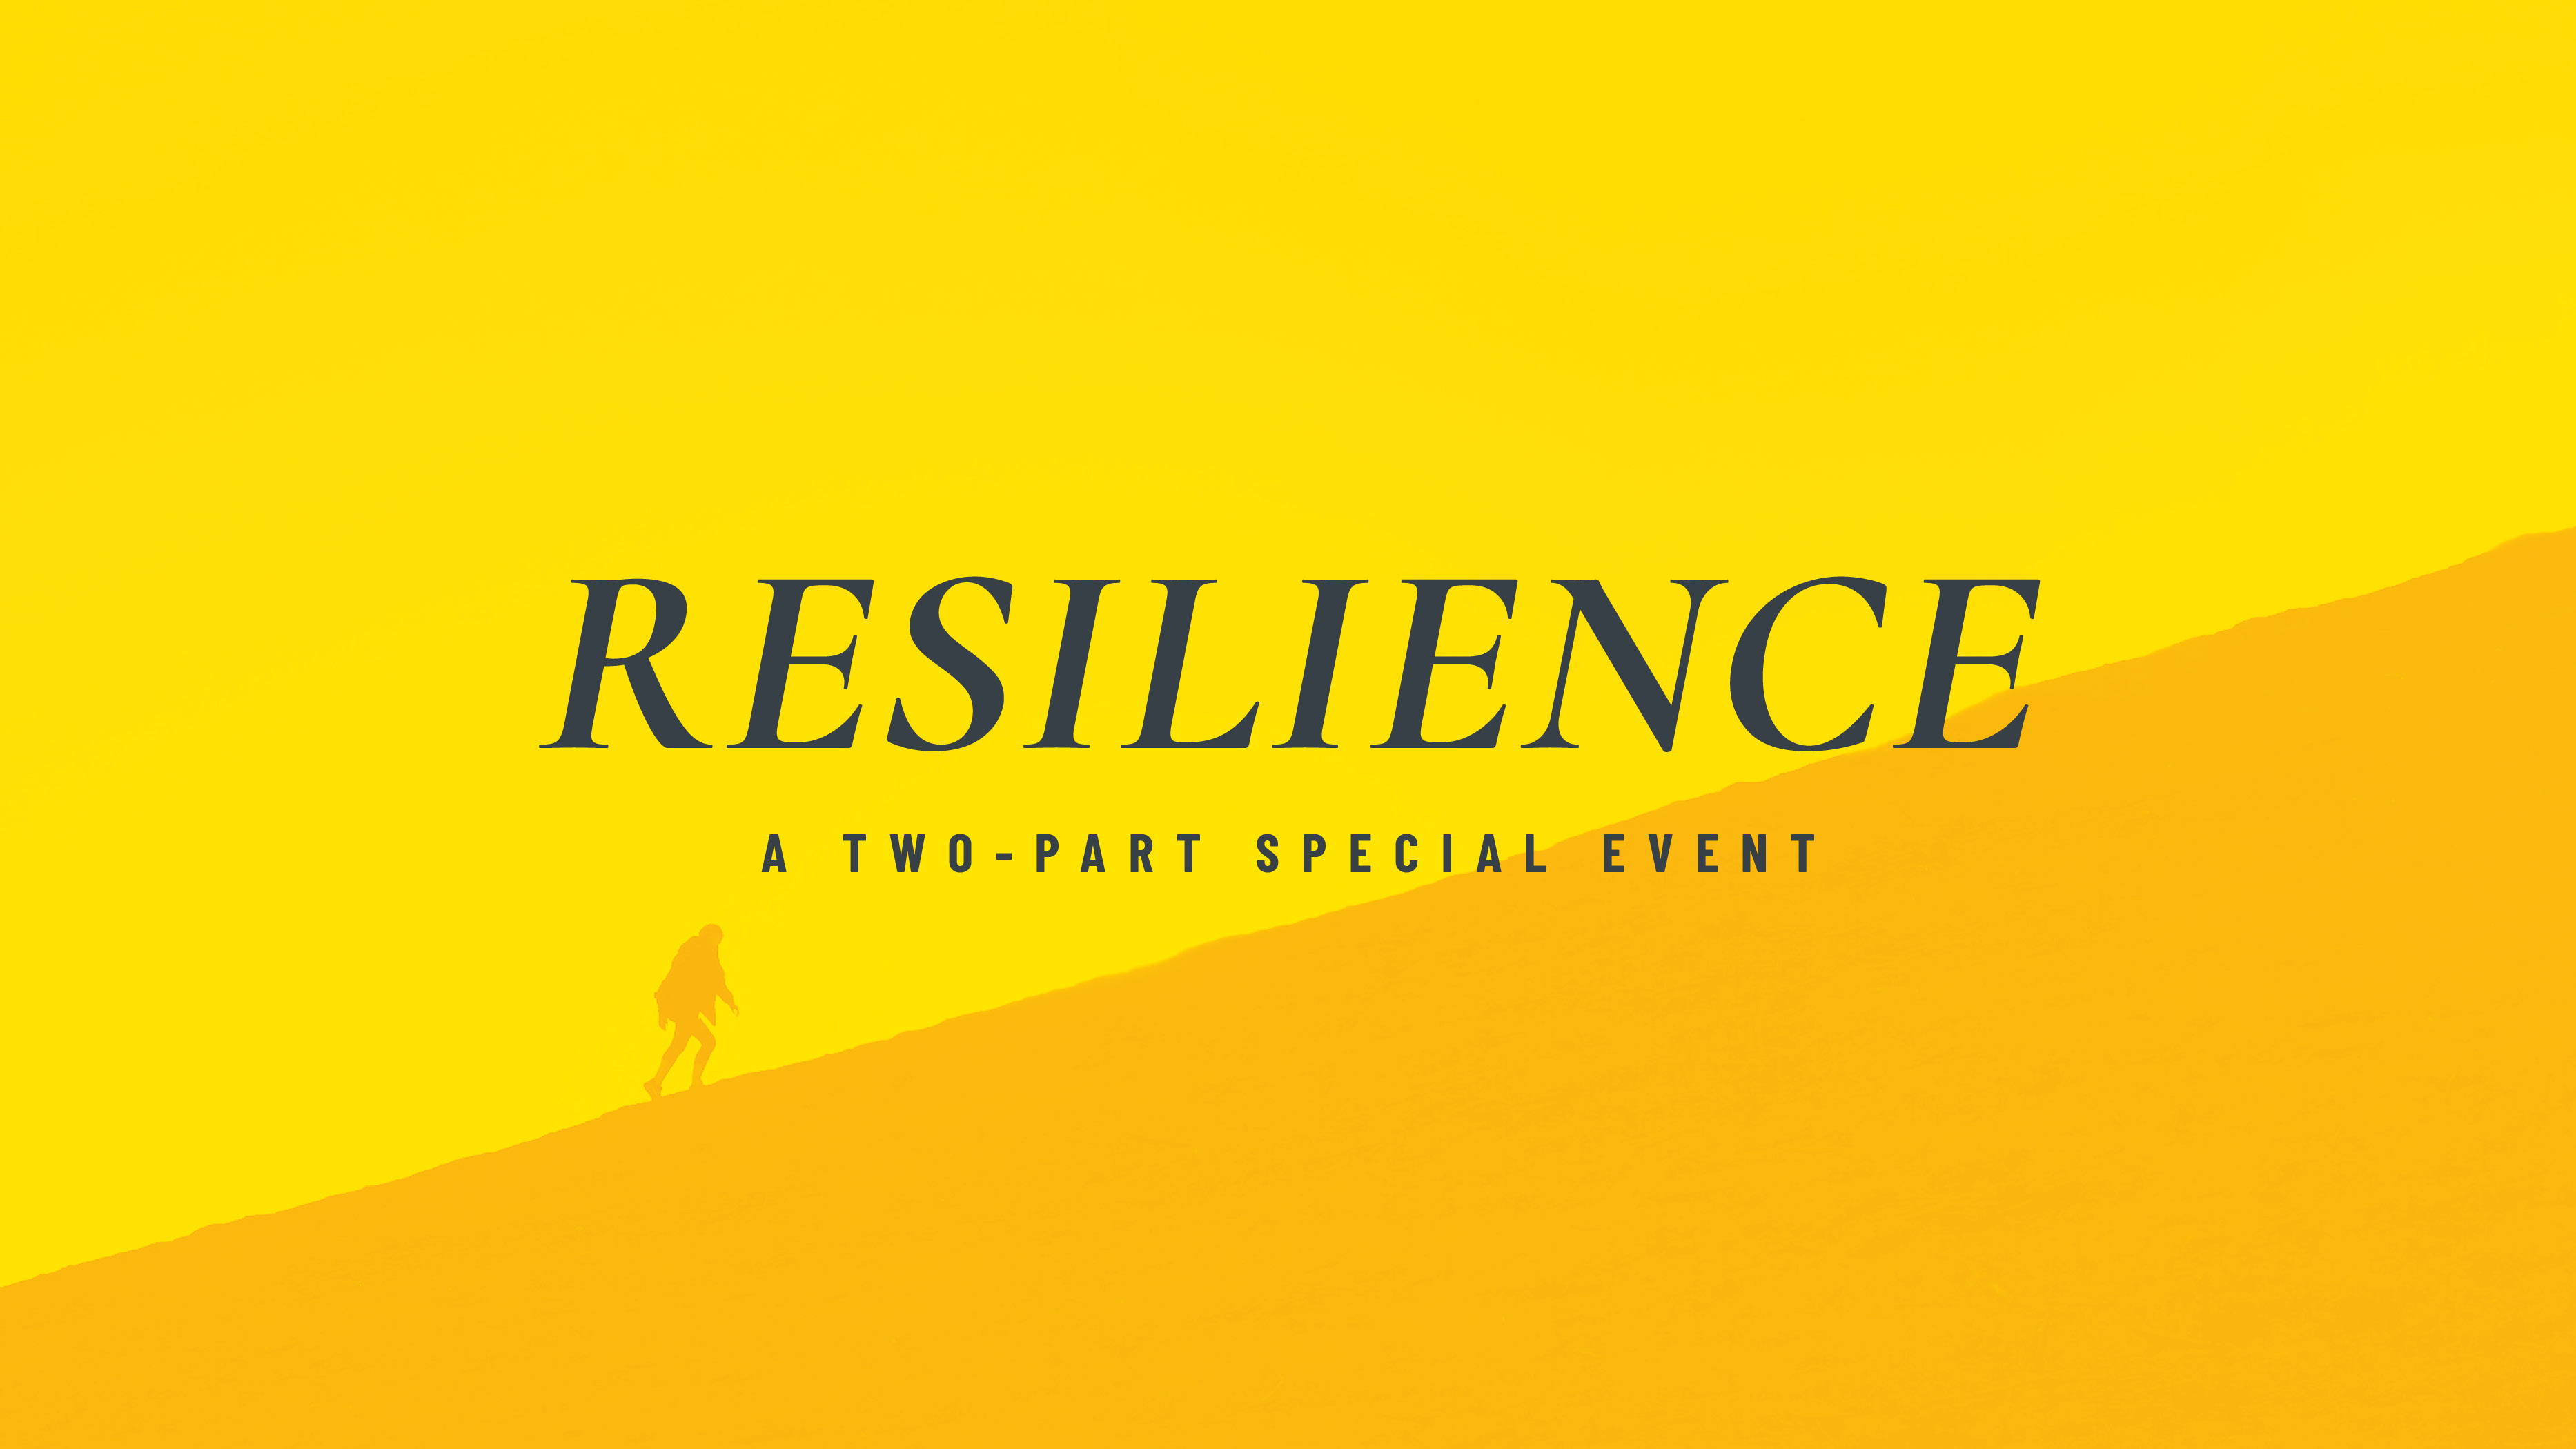 19-09 Resilience Event HD